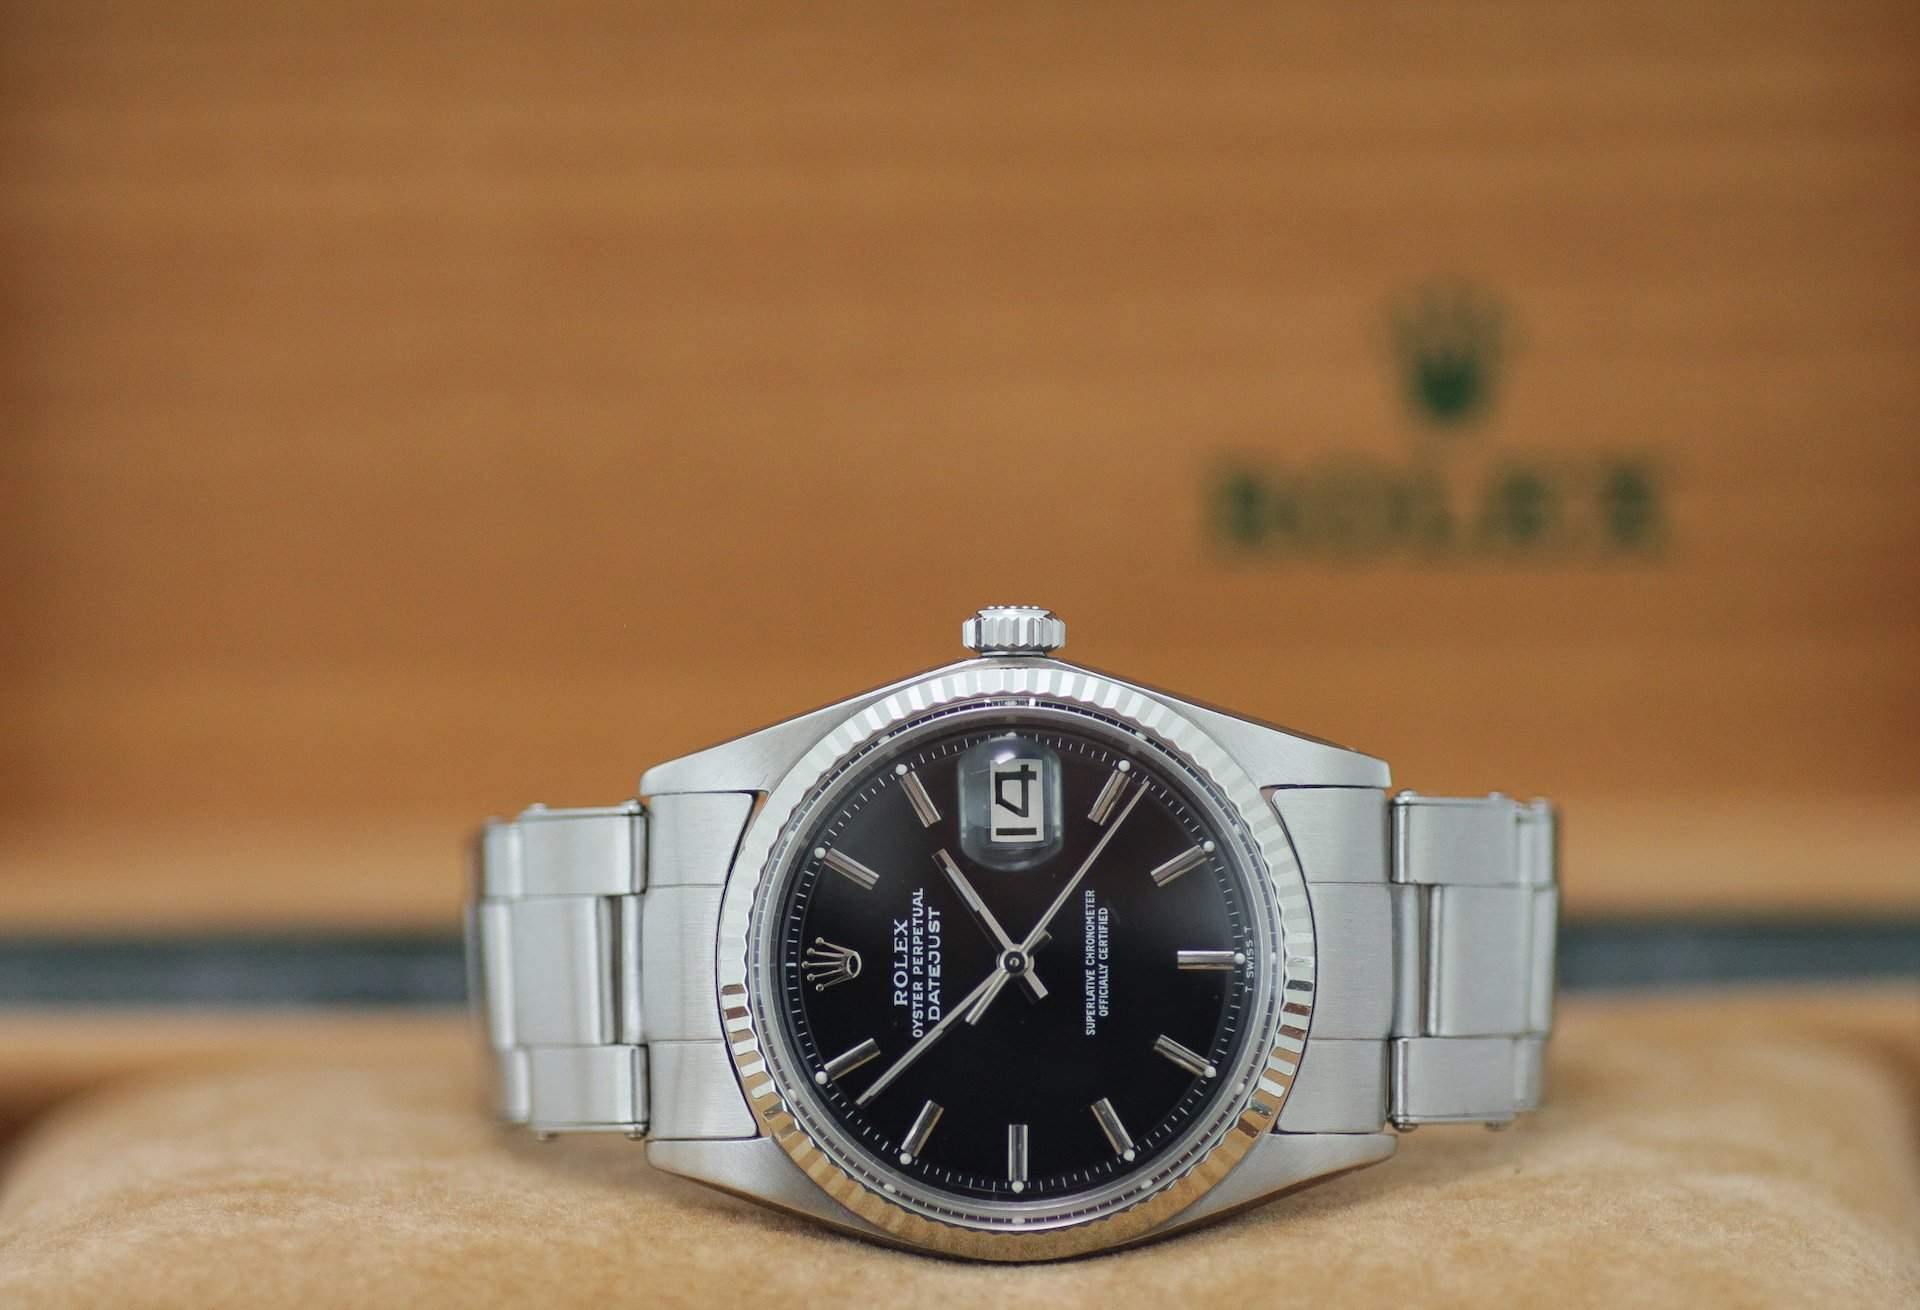 Despite its advanced age, the ref. 1601 is a full-fledged Datejust and a great introduction to the world of Rolex and the Datejust.